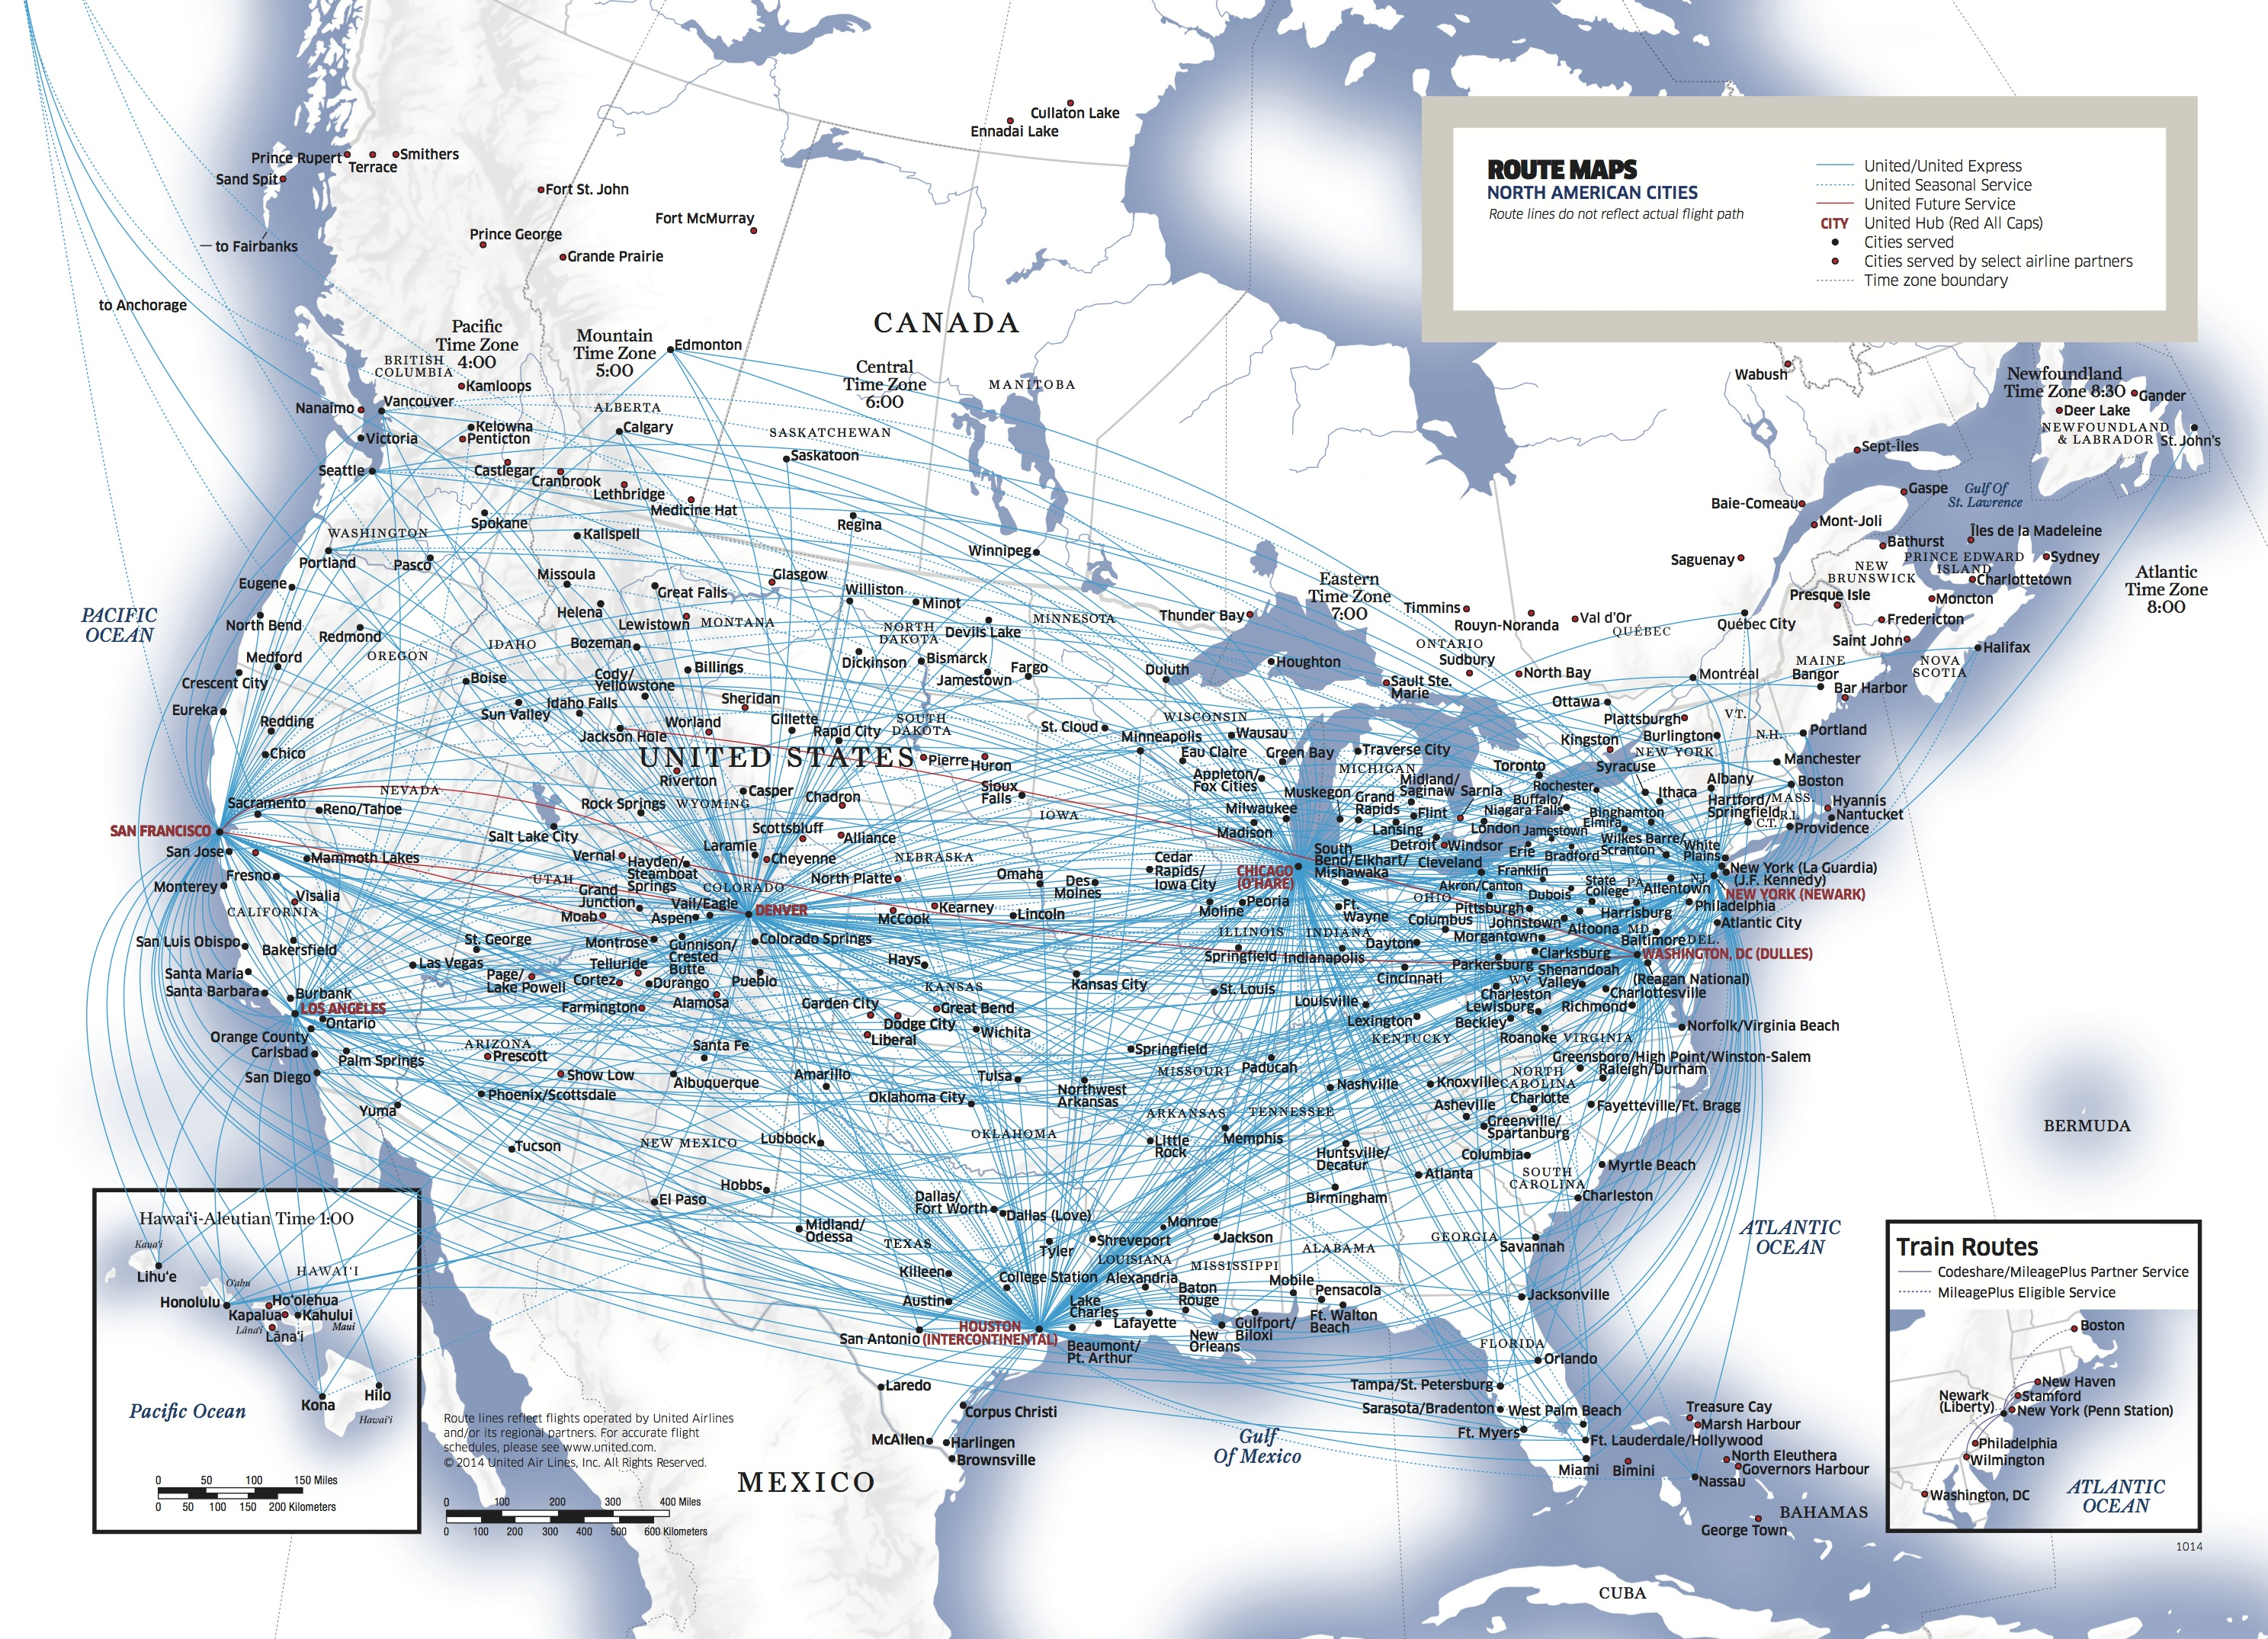 Reflection On Airlines SpokeHub Network After OHare Fire - Us airways europe route map